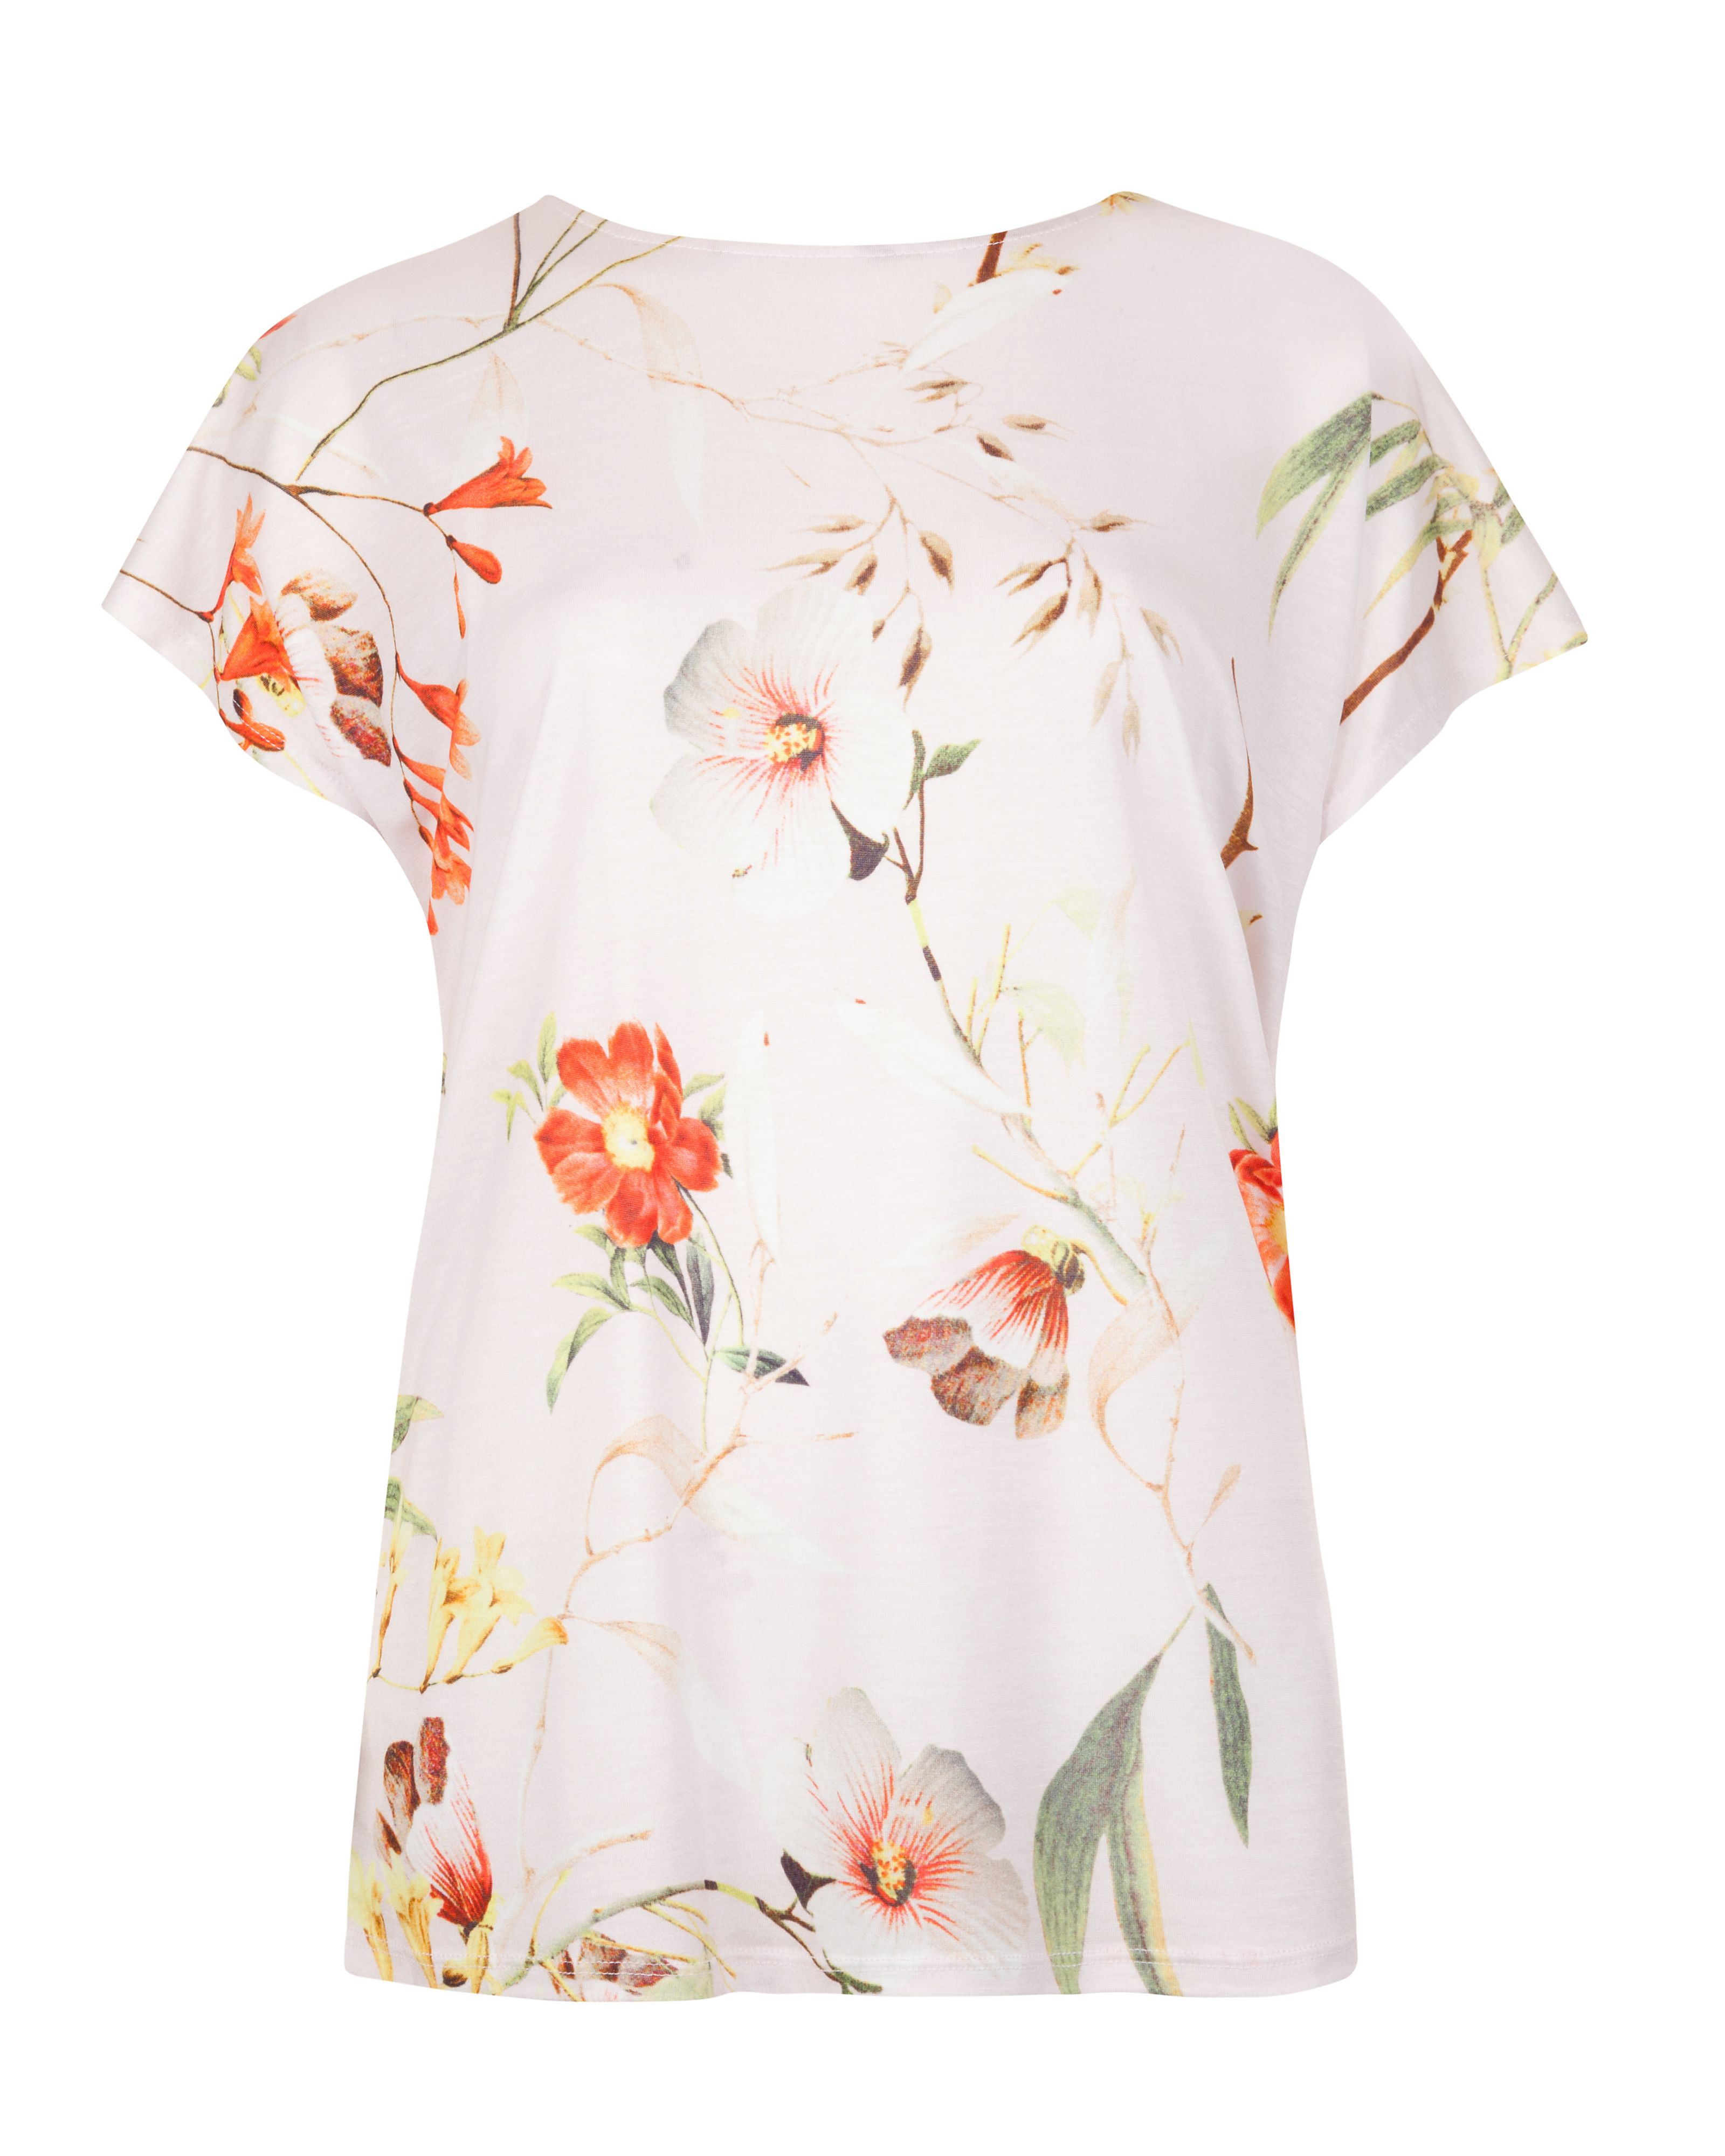 Cekek botanical bloom print tee